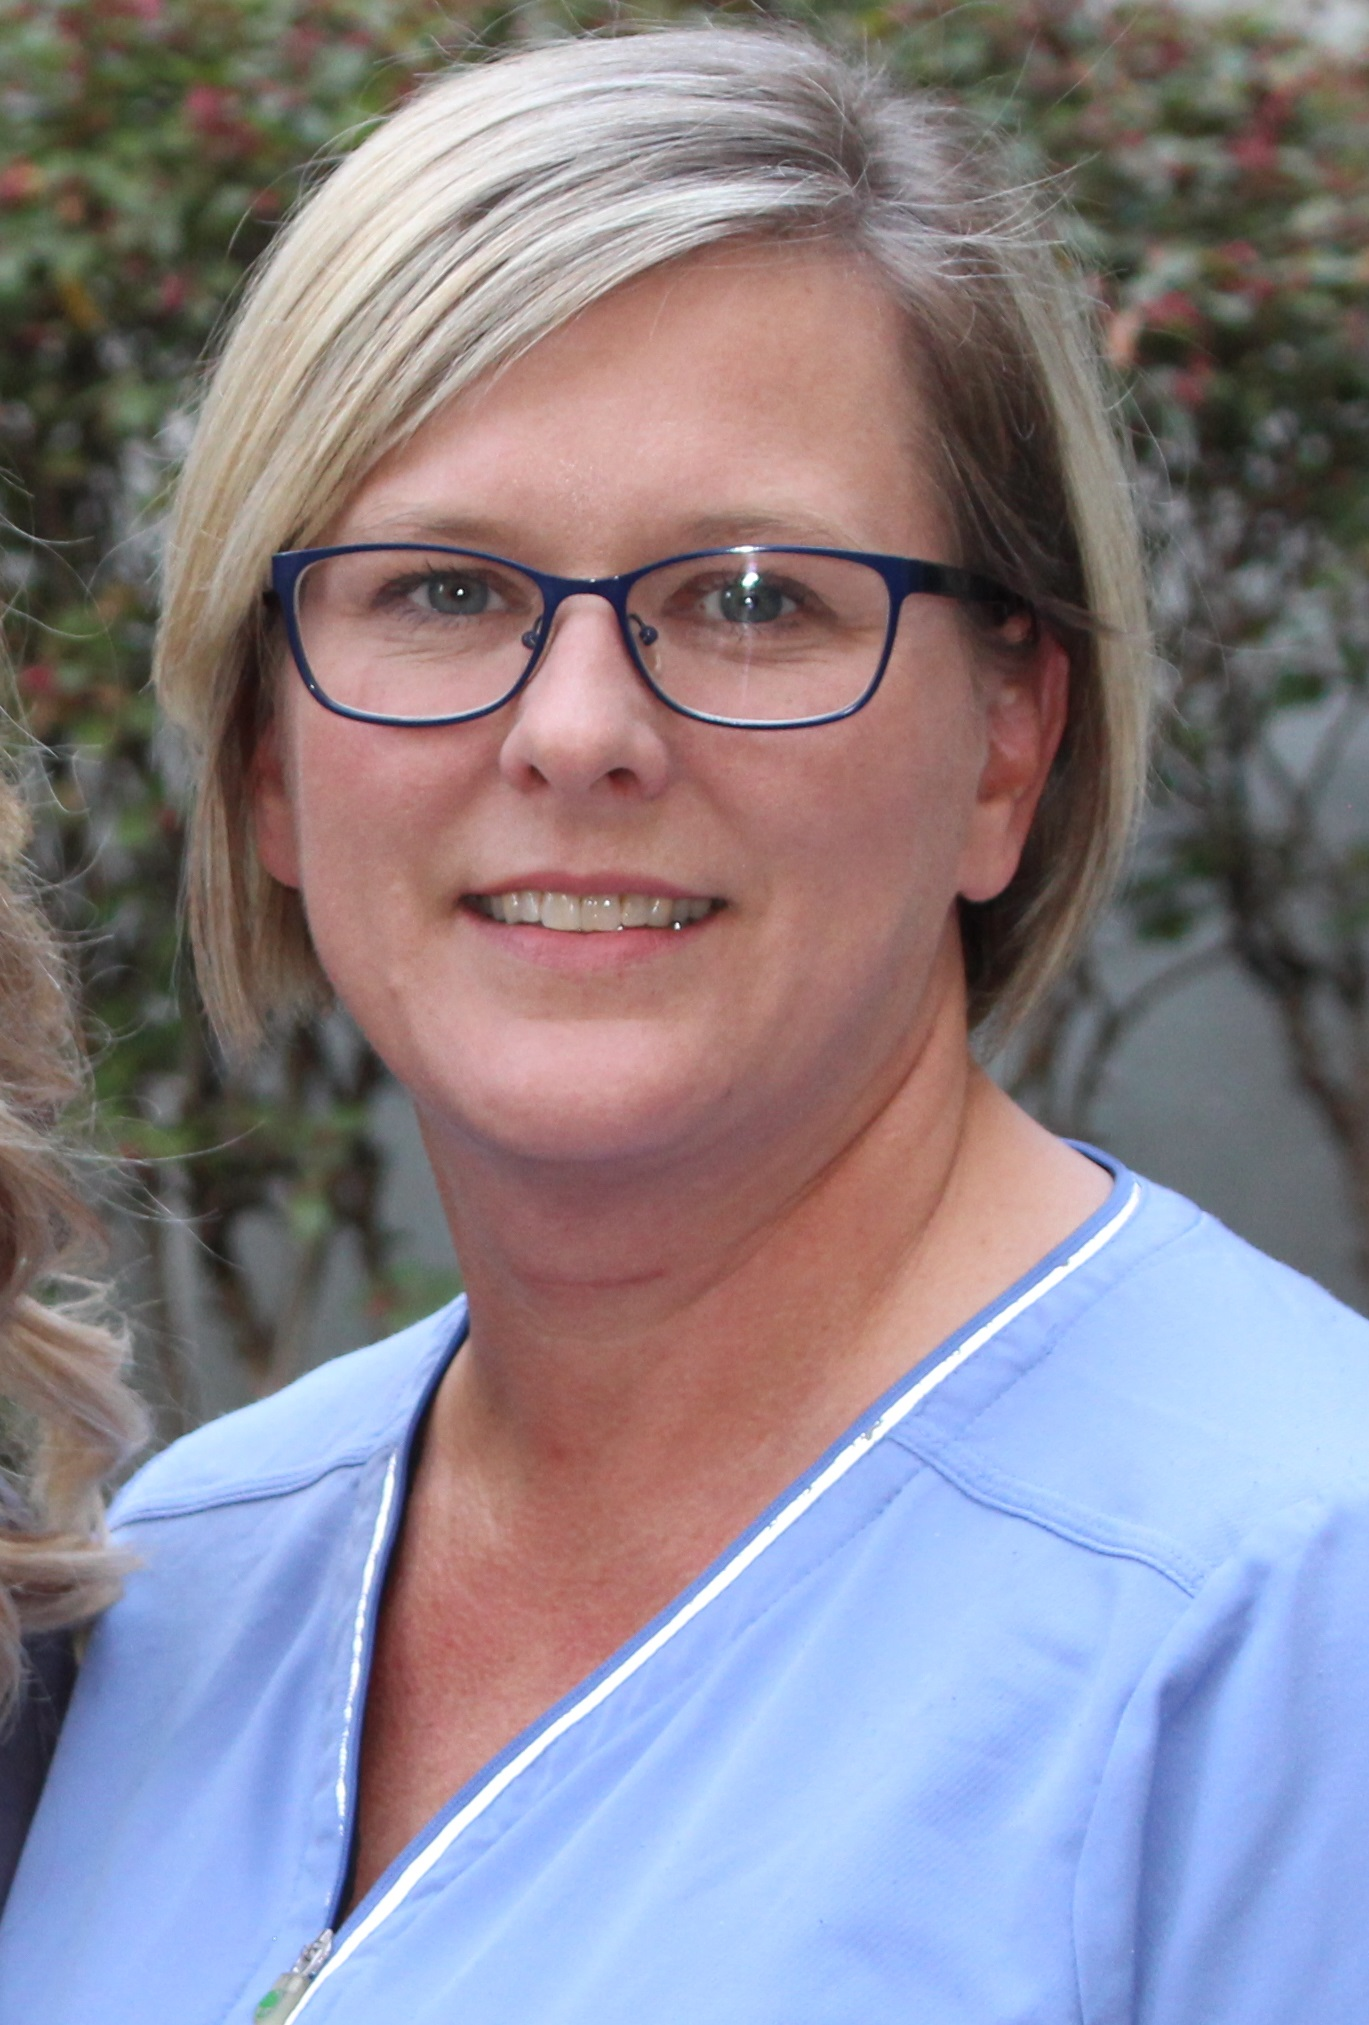 Misty Windle current in blue scrubs.